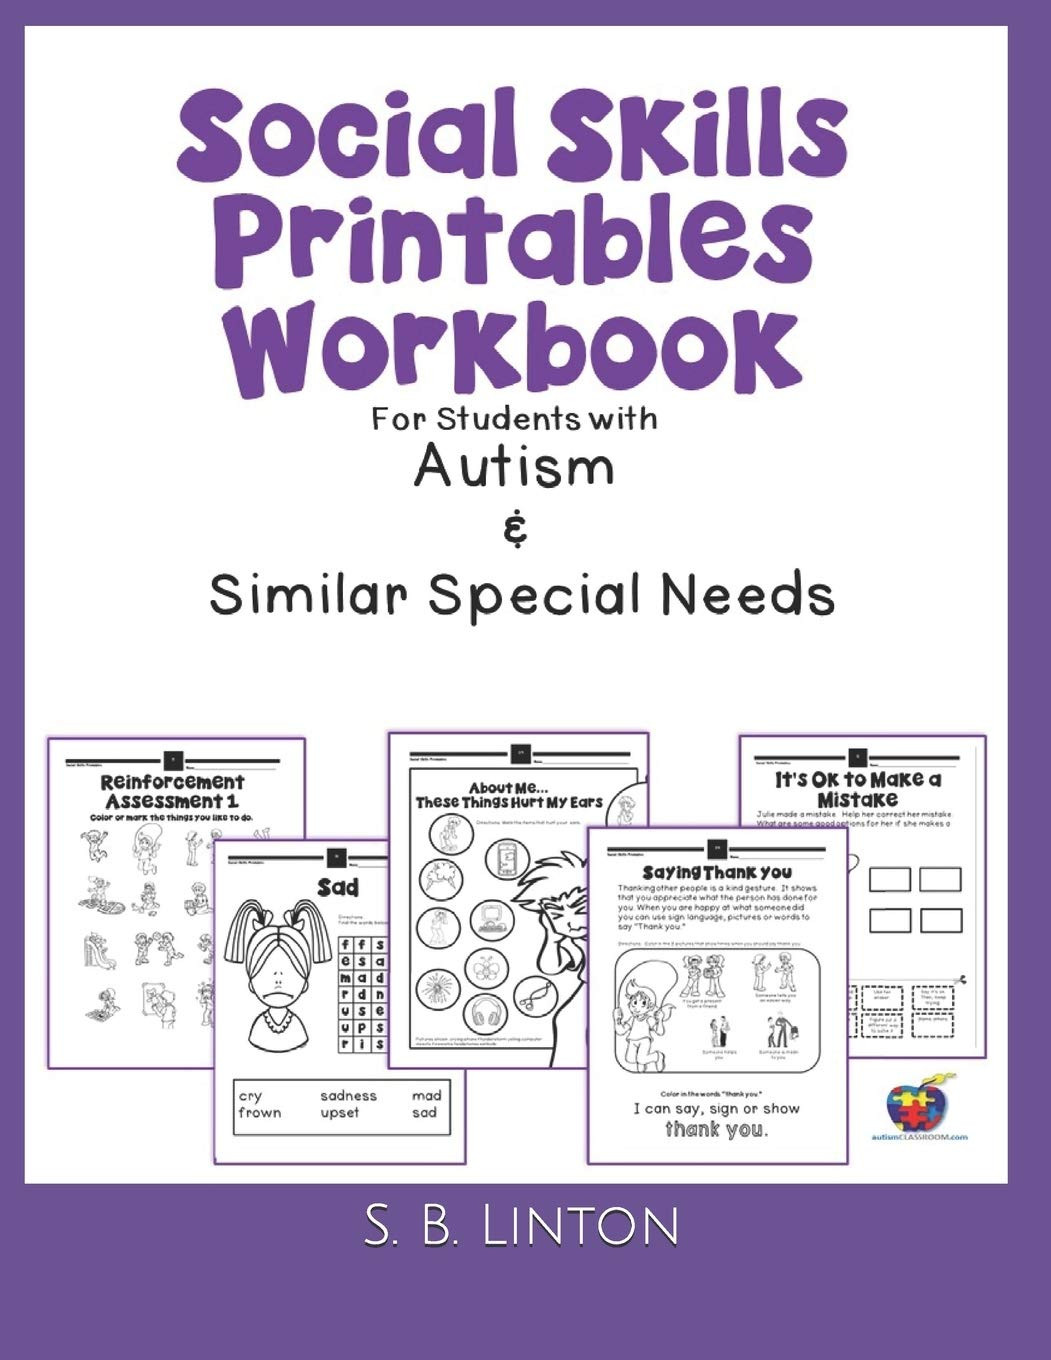 Social Skills Worksheets for Autism social Skills Printables Workbook for Students with Autism